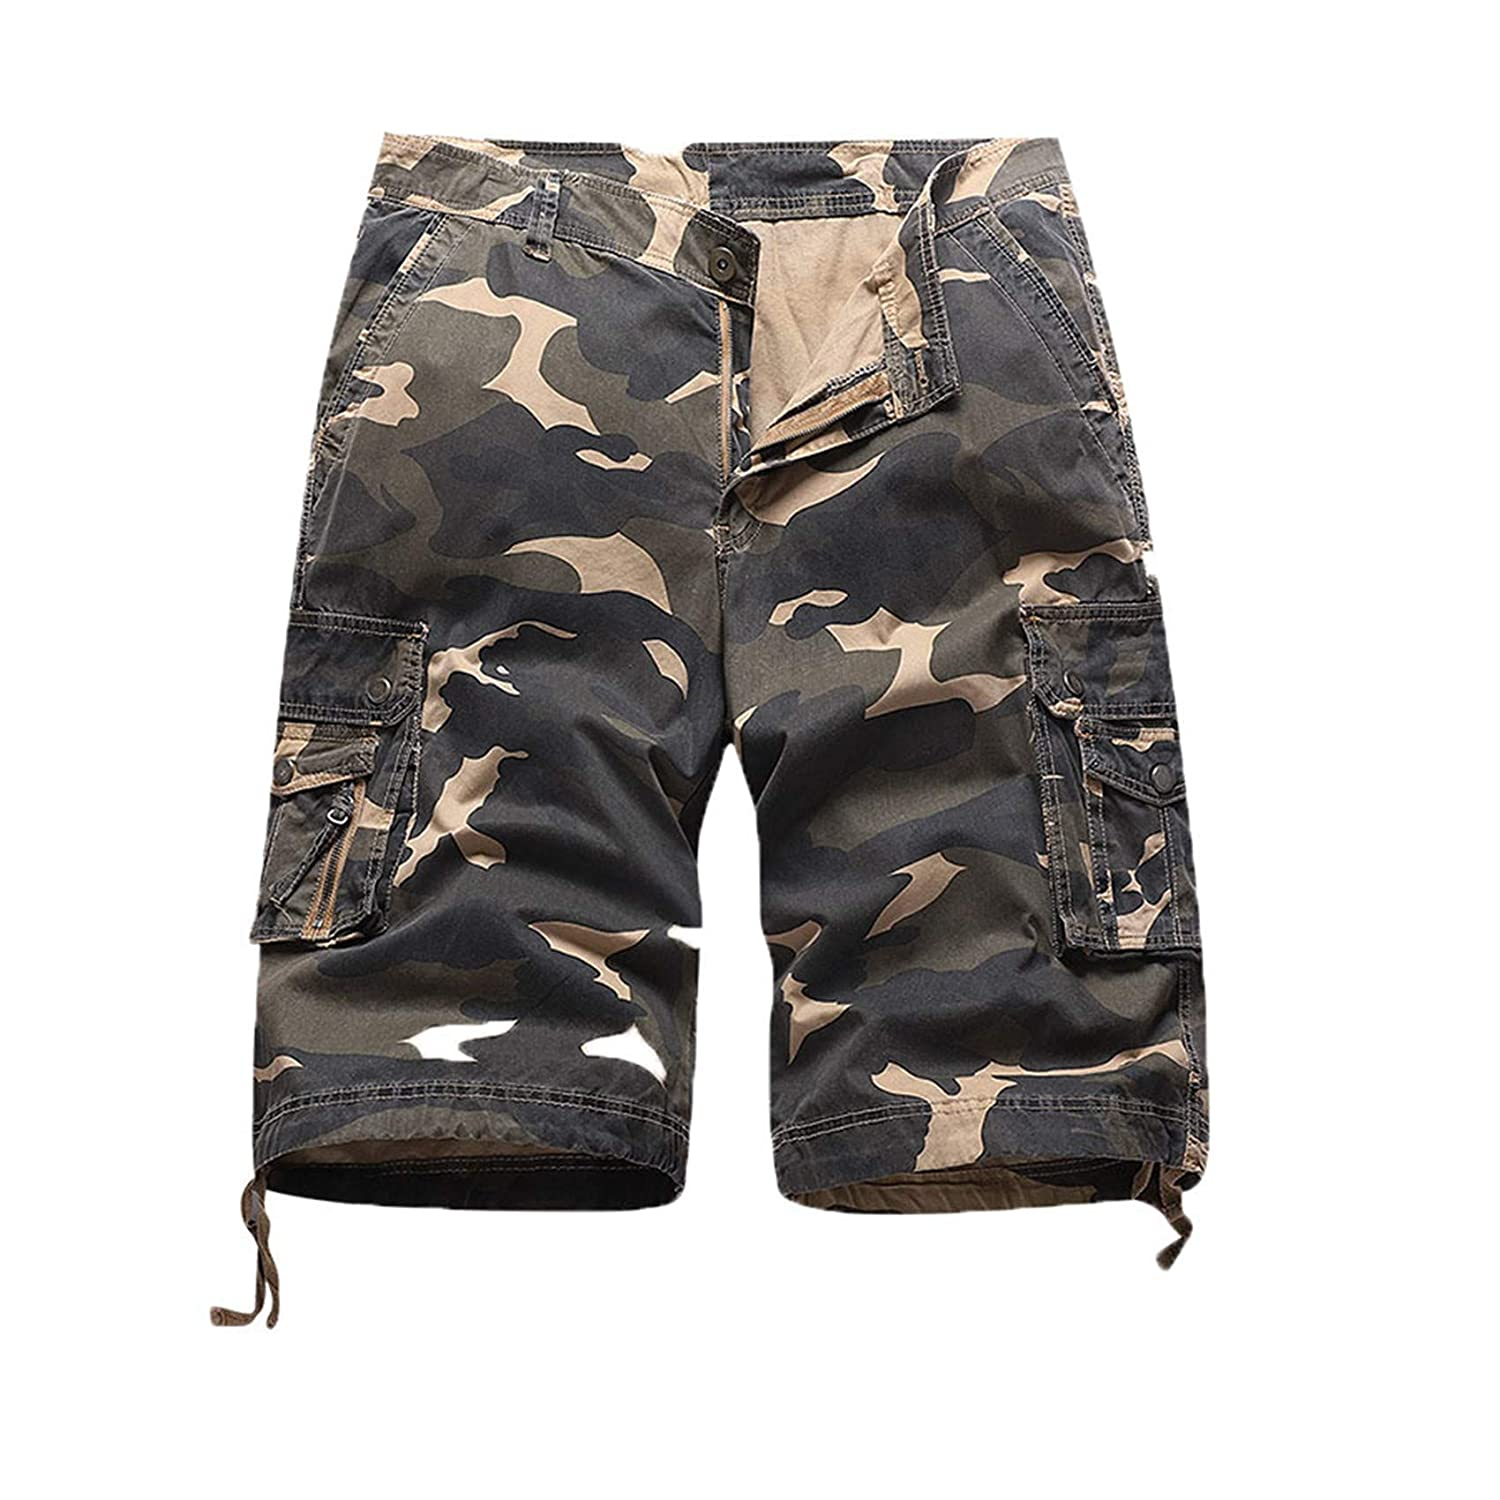 Mens Cargo Shorts Relaxed Fit Camouflage Camo Cargo Short Relaxed Fit Outdoor Summer Shorts with Multi-Pockets (Khaki Camouflage,30)